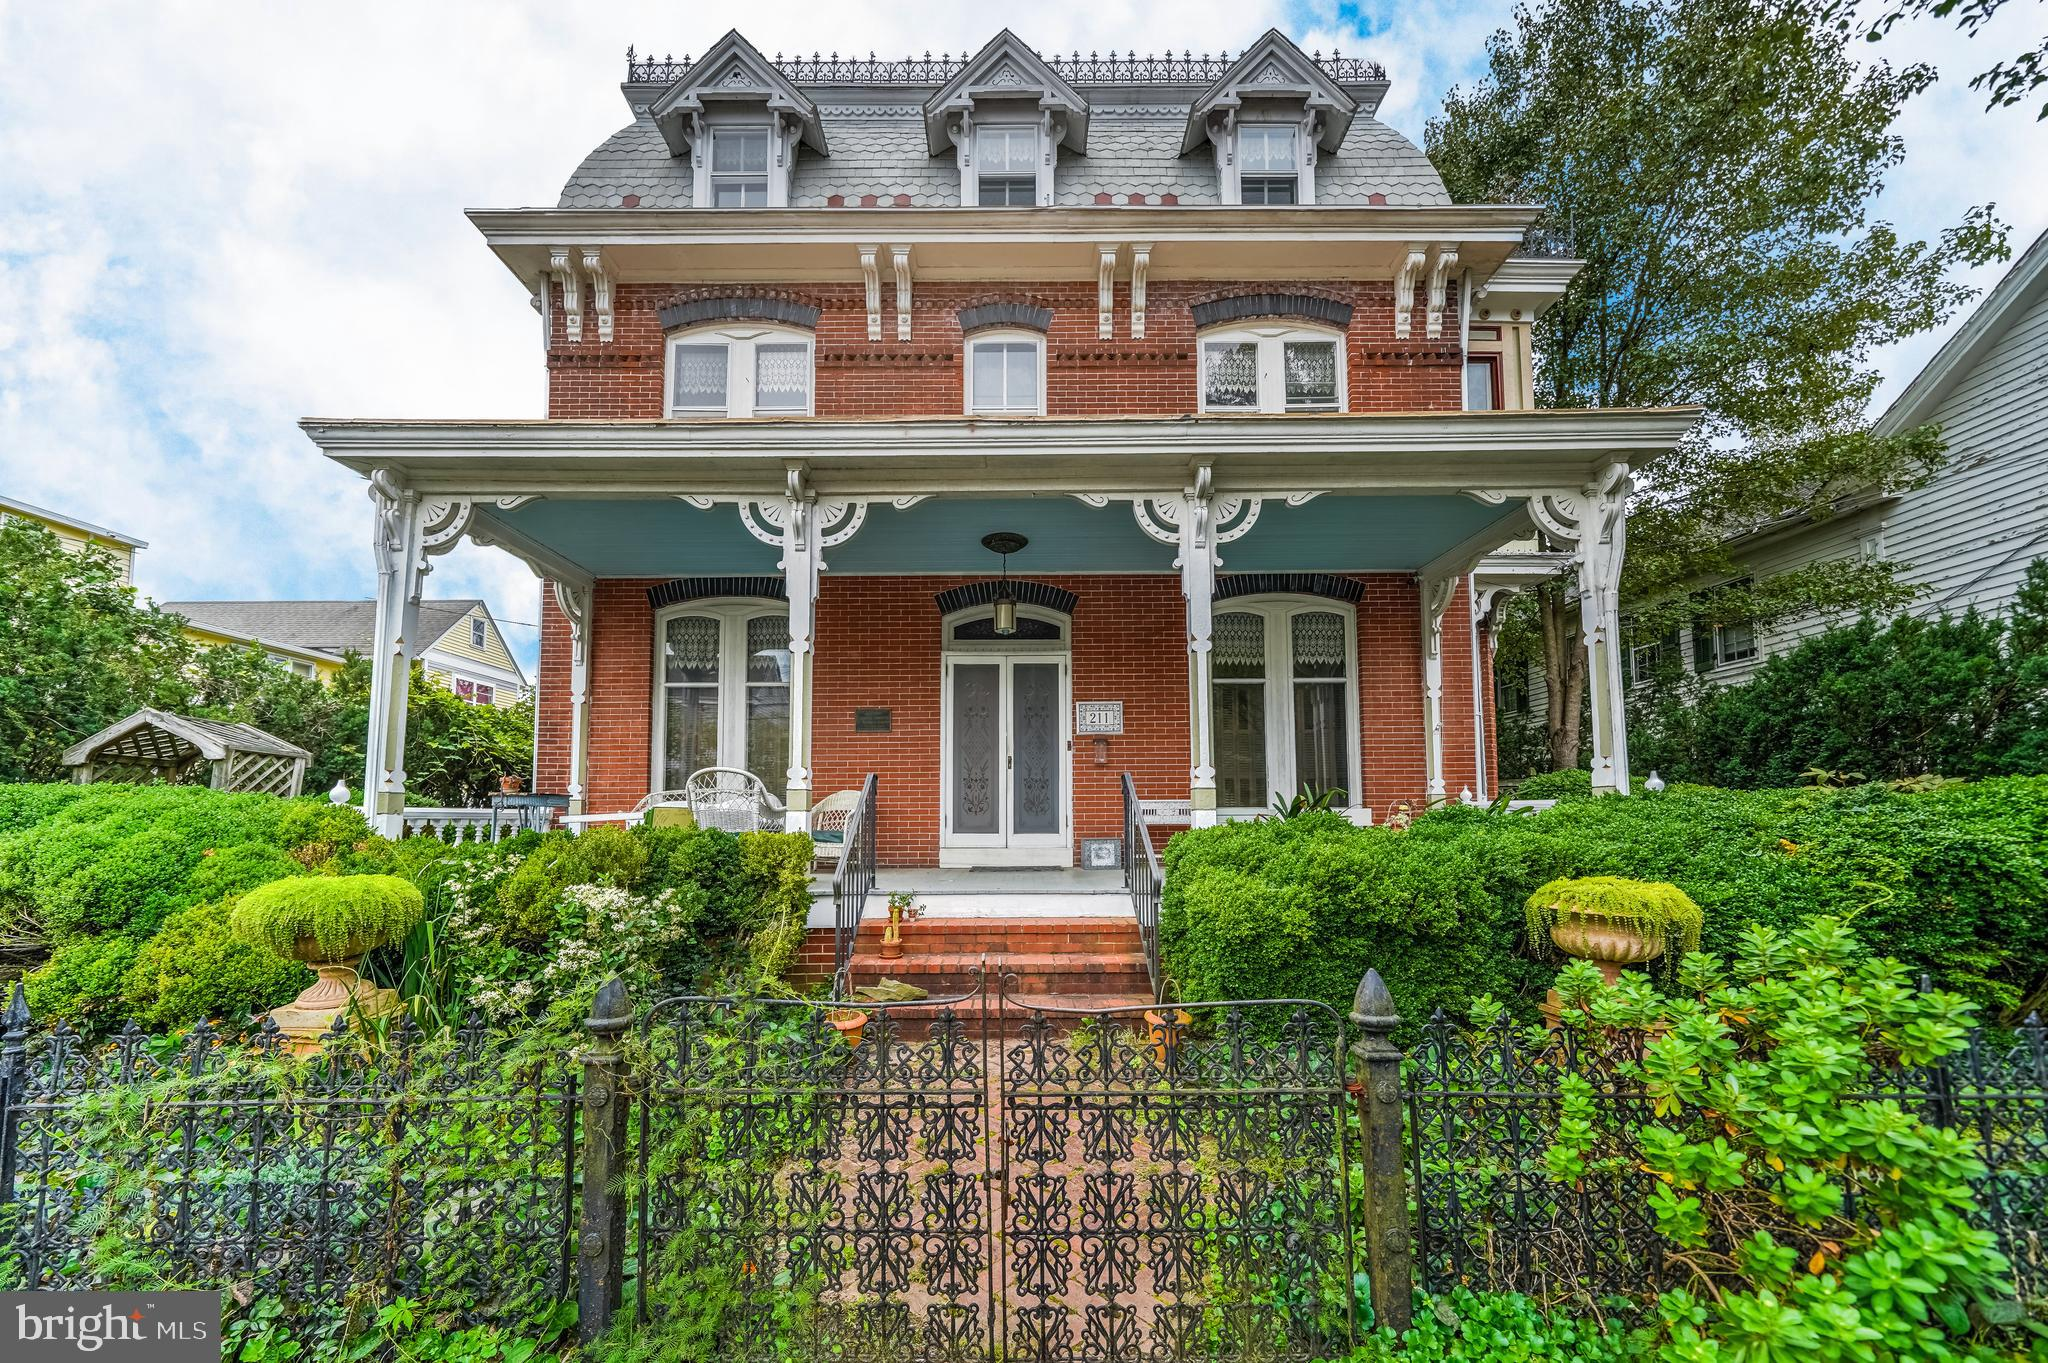 """Own a piece of history, in the Heart of Middletown's Historic District Proper, with this stunning Victorian French Second Empire with Italianate Windows property dating back to the early 1880's. 211 N. Cass Street is on the National Register of Historic Places of the United States Department of the Interior. Being just steps from Governor Bigg?s Mansion, this property exudes historic charm, but with today's modern conveniences - truly the best of both worlds and MOVE-IN READY! This grand Victorian is of solid brick construction (with added brick embellishments) and a slate Mansard roof to enhance the charm. The charming period cast iron fence perfectly compliments the landscaping and brick walkway with stunning blooming perennials. The main roof line (and two side bay window roofs) also contain increasingly rare intact cast iron cresting. The back yard is enhanced with a semi-circular brick patio and Koi pond overlooking the serene lot where landscaping opportunities are endless. The large front porch with standing seam metal roof, welcomes you back into a piece of history. Upon entering the foyer, you'll immediately notice the stunning hardwood flooring, custom and unique doors, detailed oak fretwork and original Eastlake hardware - all which can be enjoyed throughout the home. On one side of the foyer you'll find a large formal living room with a Harman palladian-windowed wood pellet stove & period chandeliers with plaster medallions.  On the other side you enter the formal dining room through the curved double doors featuring a wedding cake crystal chandelier. Throughout the home there is many hand painted and stained glass period windows. Past the foyer is the inviting kitchen. The kitchen, updated in 2019, features dovetailed natural maple/glazed cabinets, stainless steel appliances and granite counters. Conveniently located off the kitchen, in an adorable """"mudroom"""", which includes a washer + dryer and pantry area. Behind the kitchen is a large family room addi"""